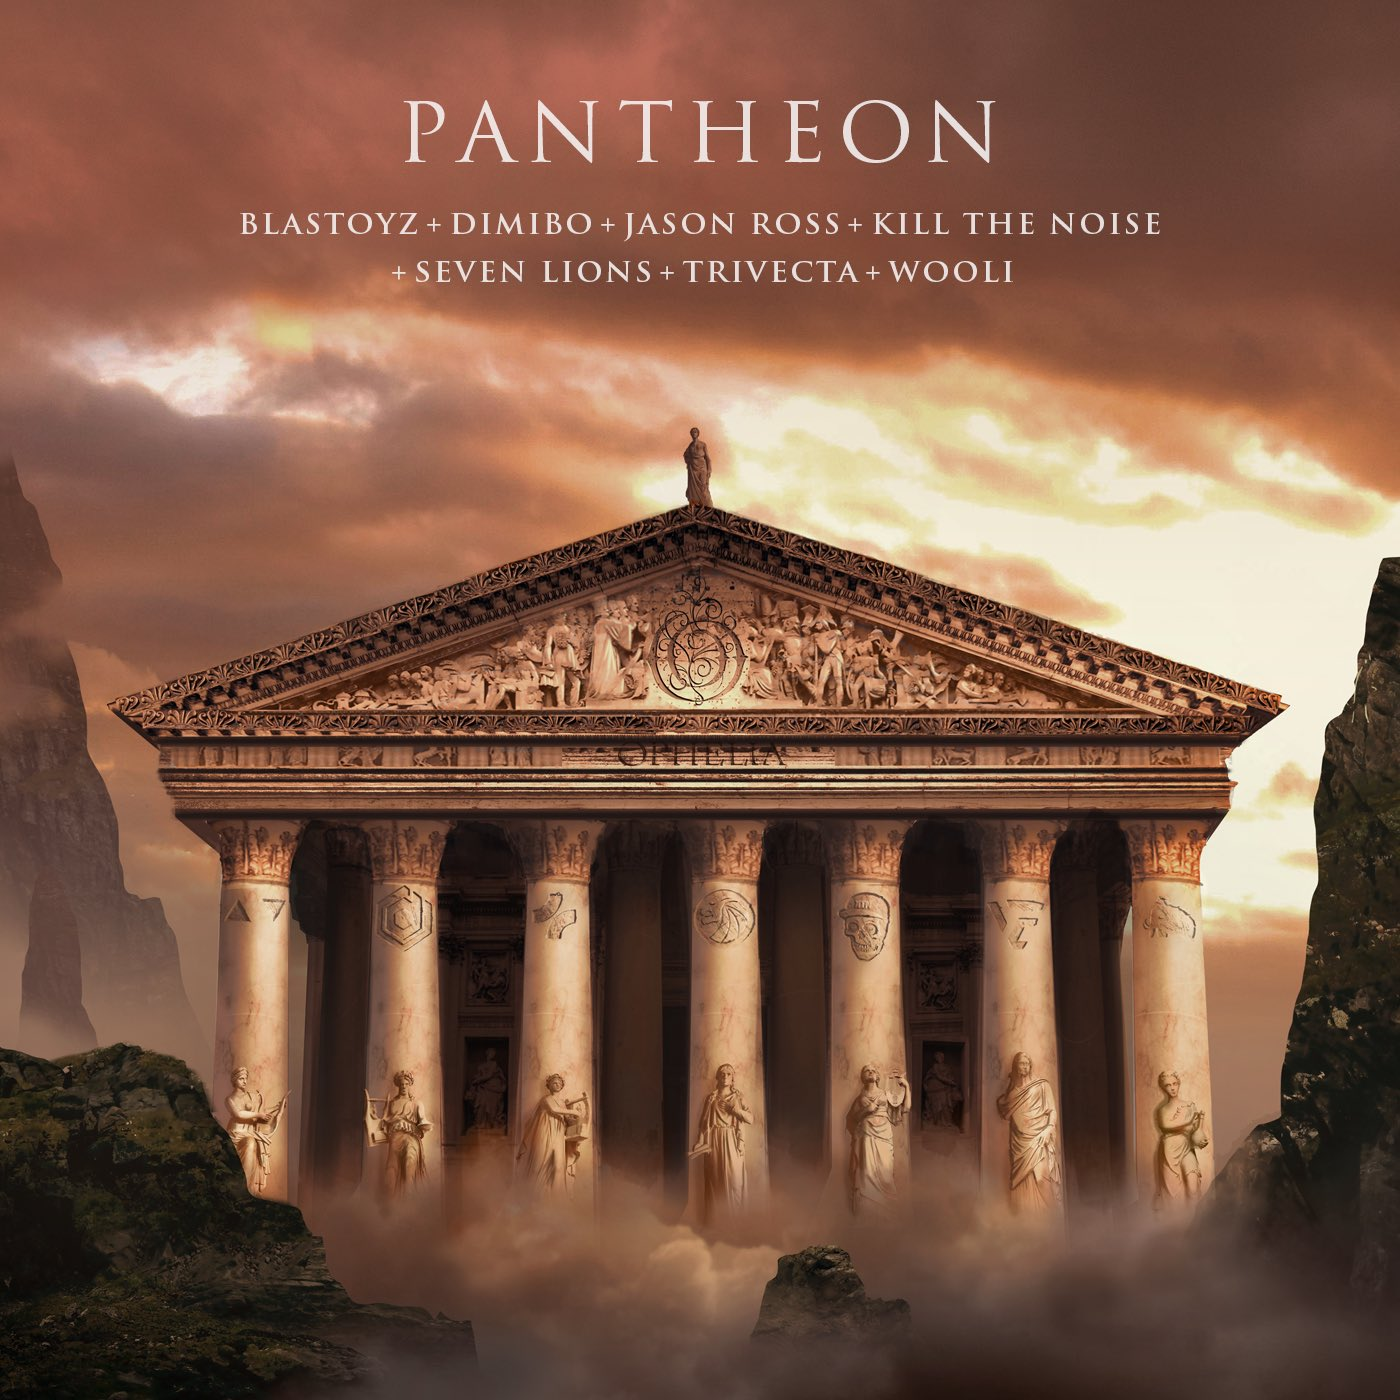 Seven Lions' Ophelia Records Label Releases Highly-Anticipated Collab, 'Pantheon'